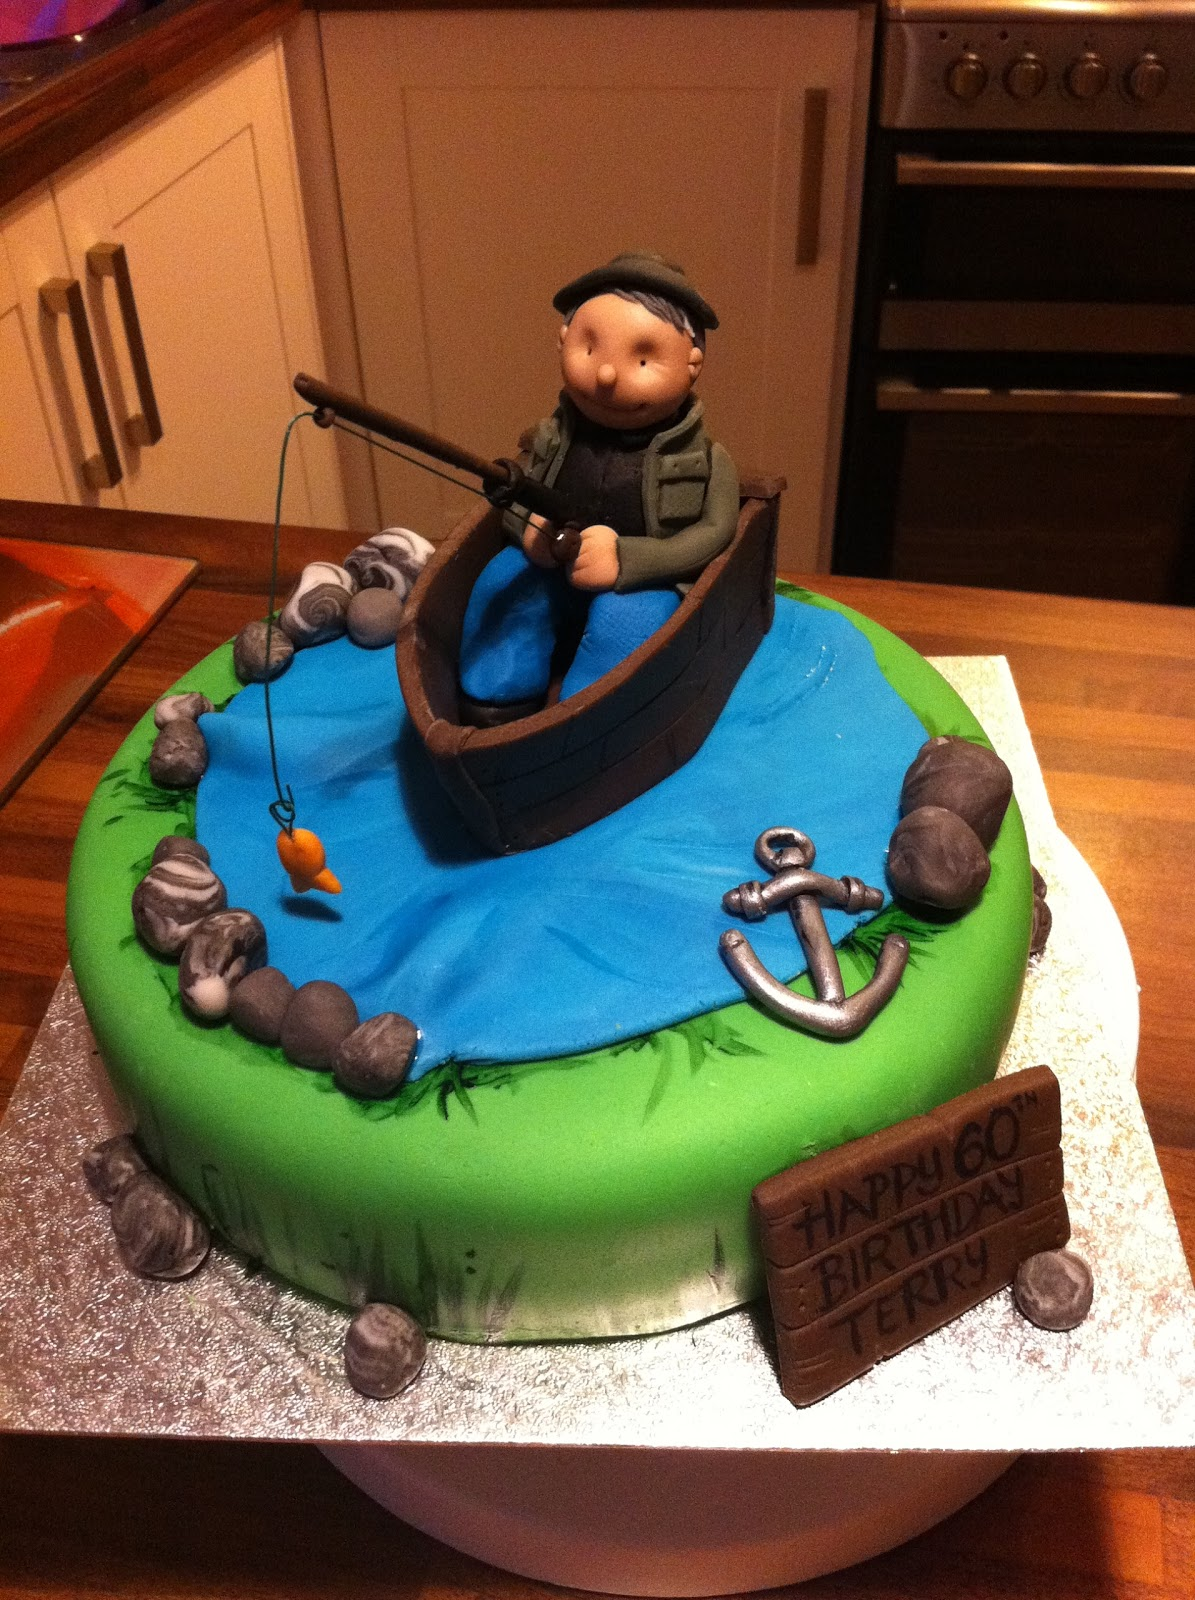 Caked in Icing Fishing Theme Cake